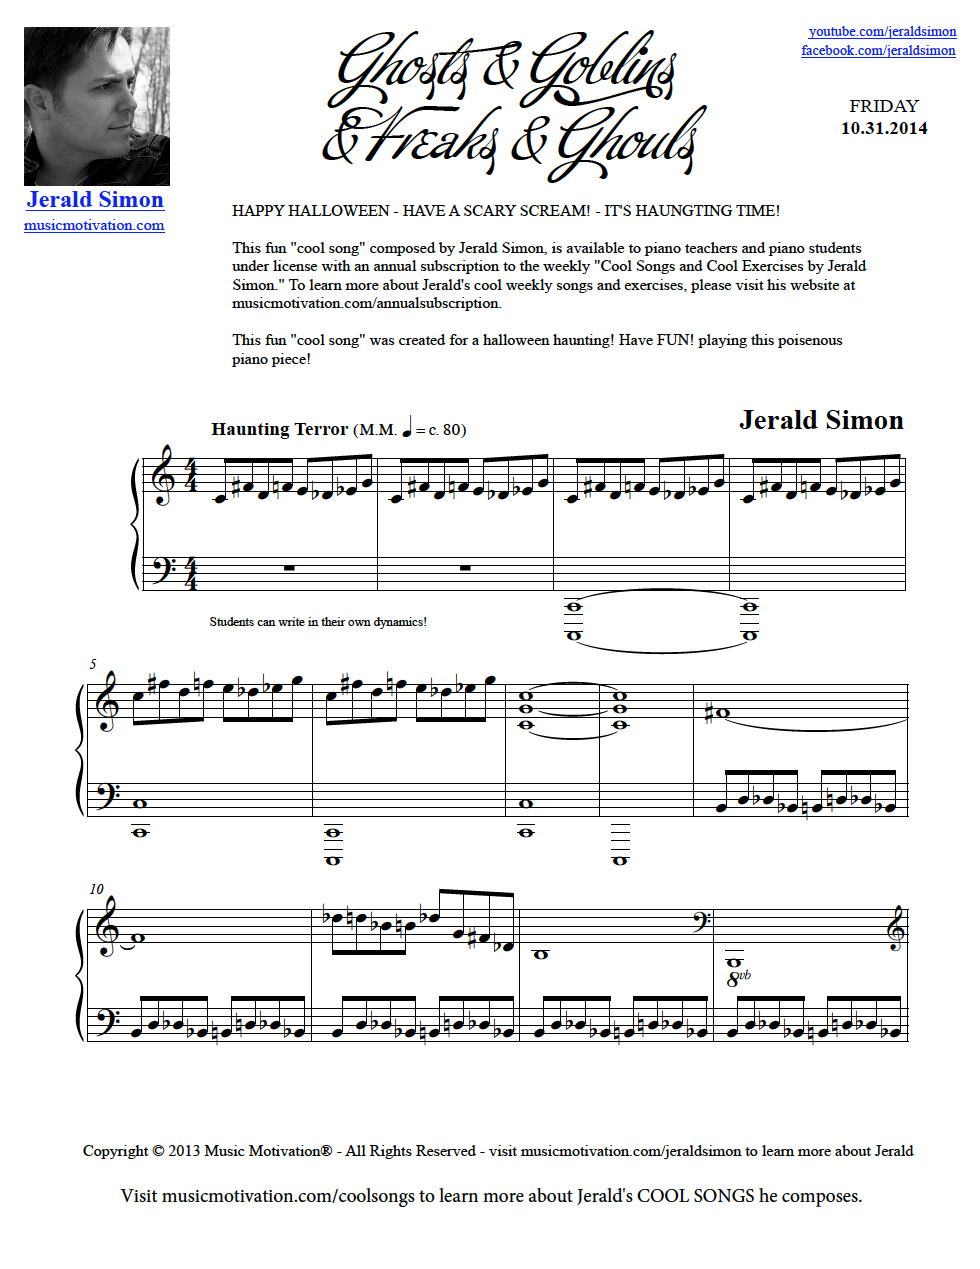 Ghosts and Goblins and Freaks and Ghouls by Jerald Simon (Intermediate  Level - PDF, MP3s, and Video Lesson - Studio License